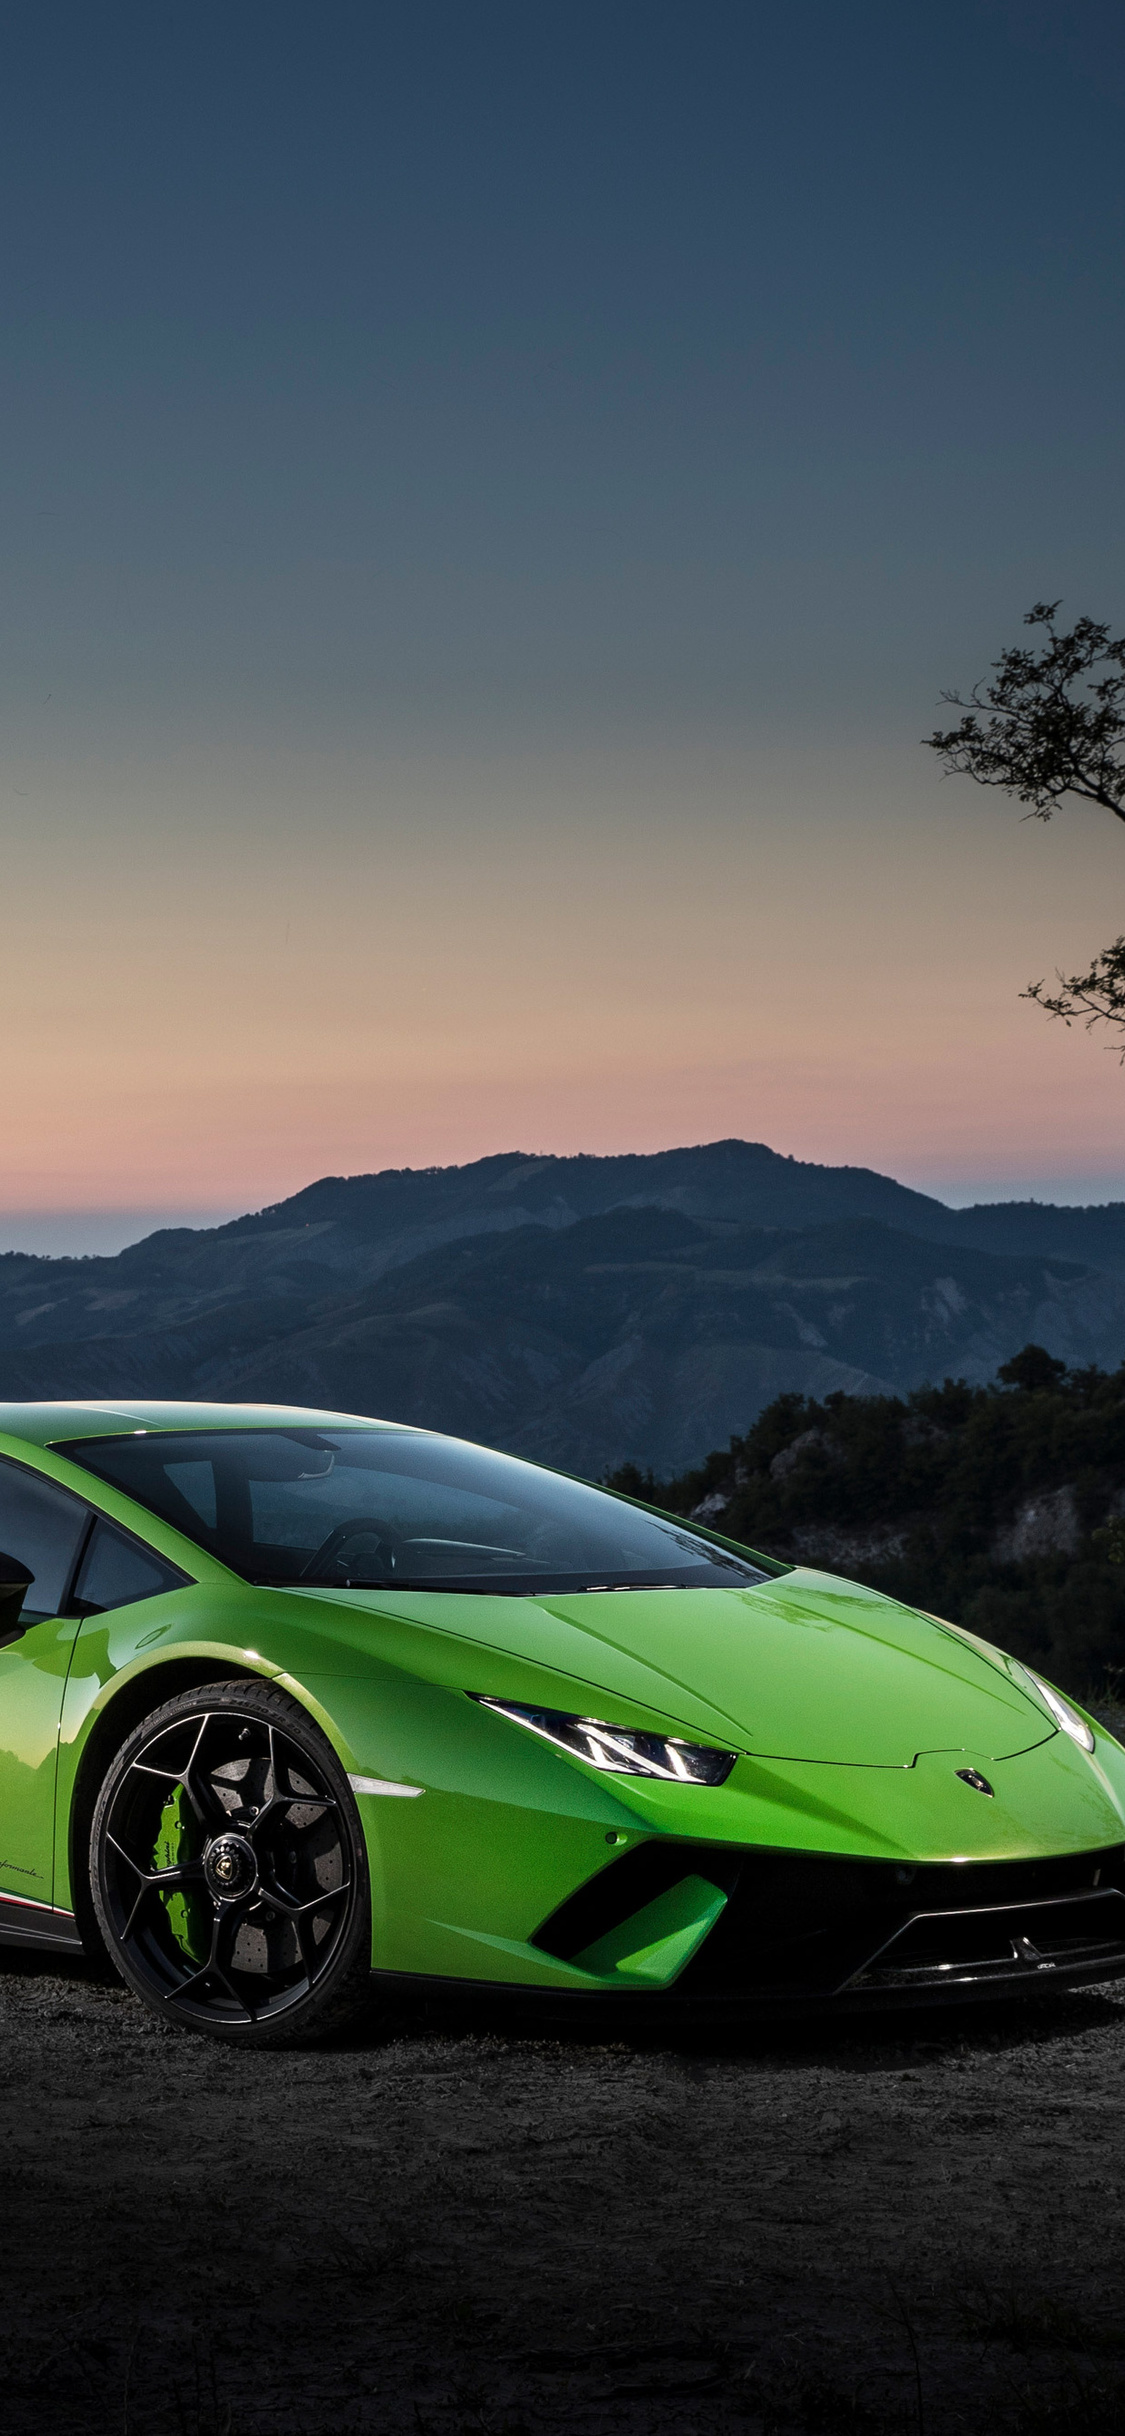 1125x2436 4k Lamborghini Huracan Performante Iphone Xs Iphone 10